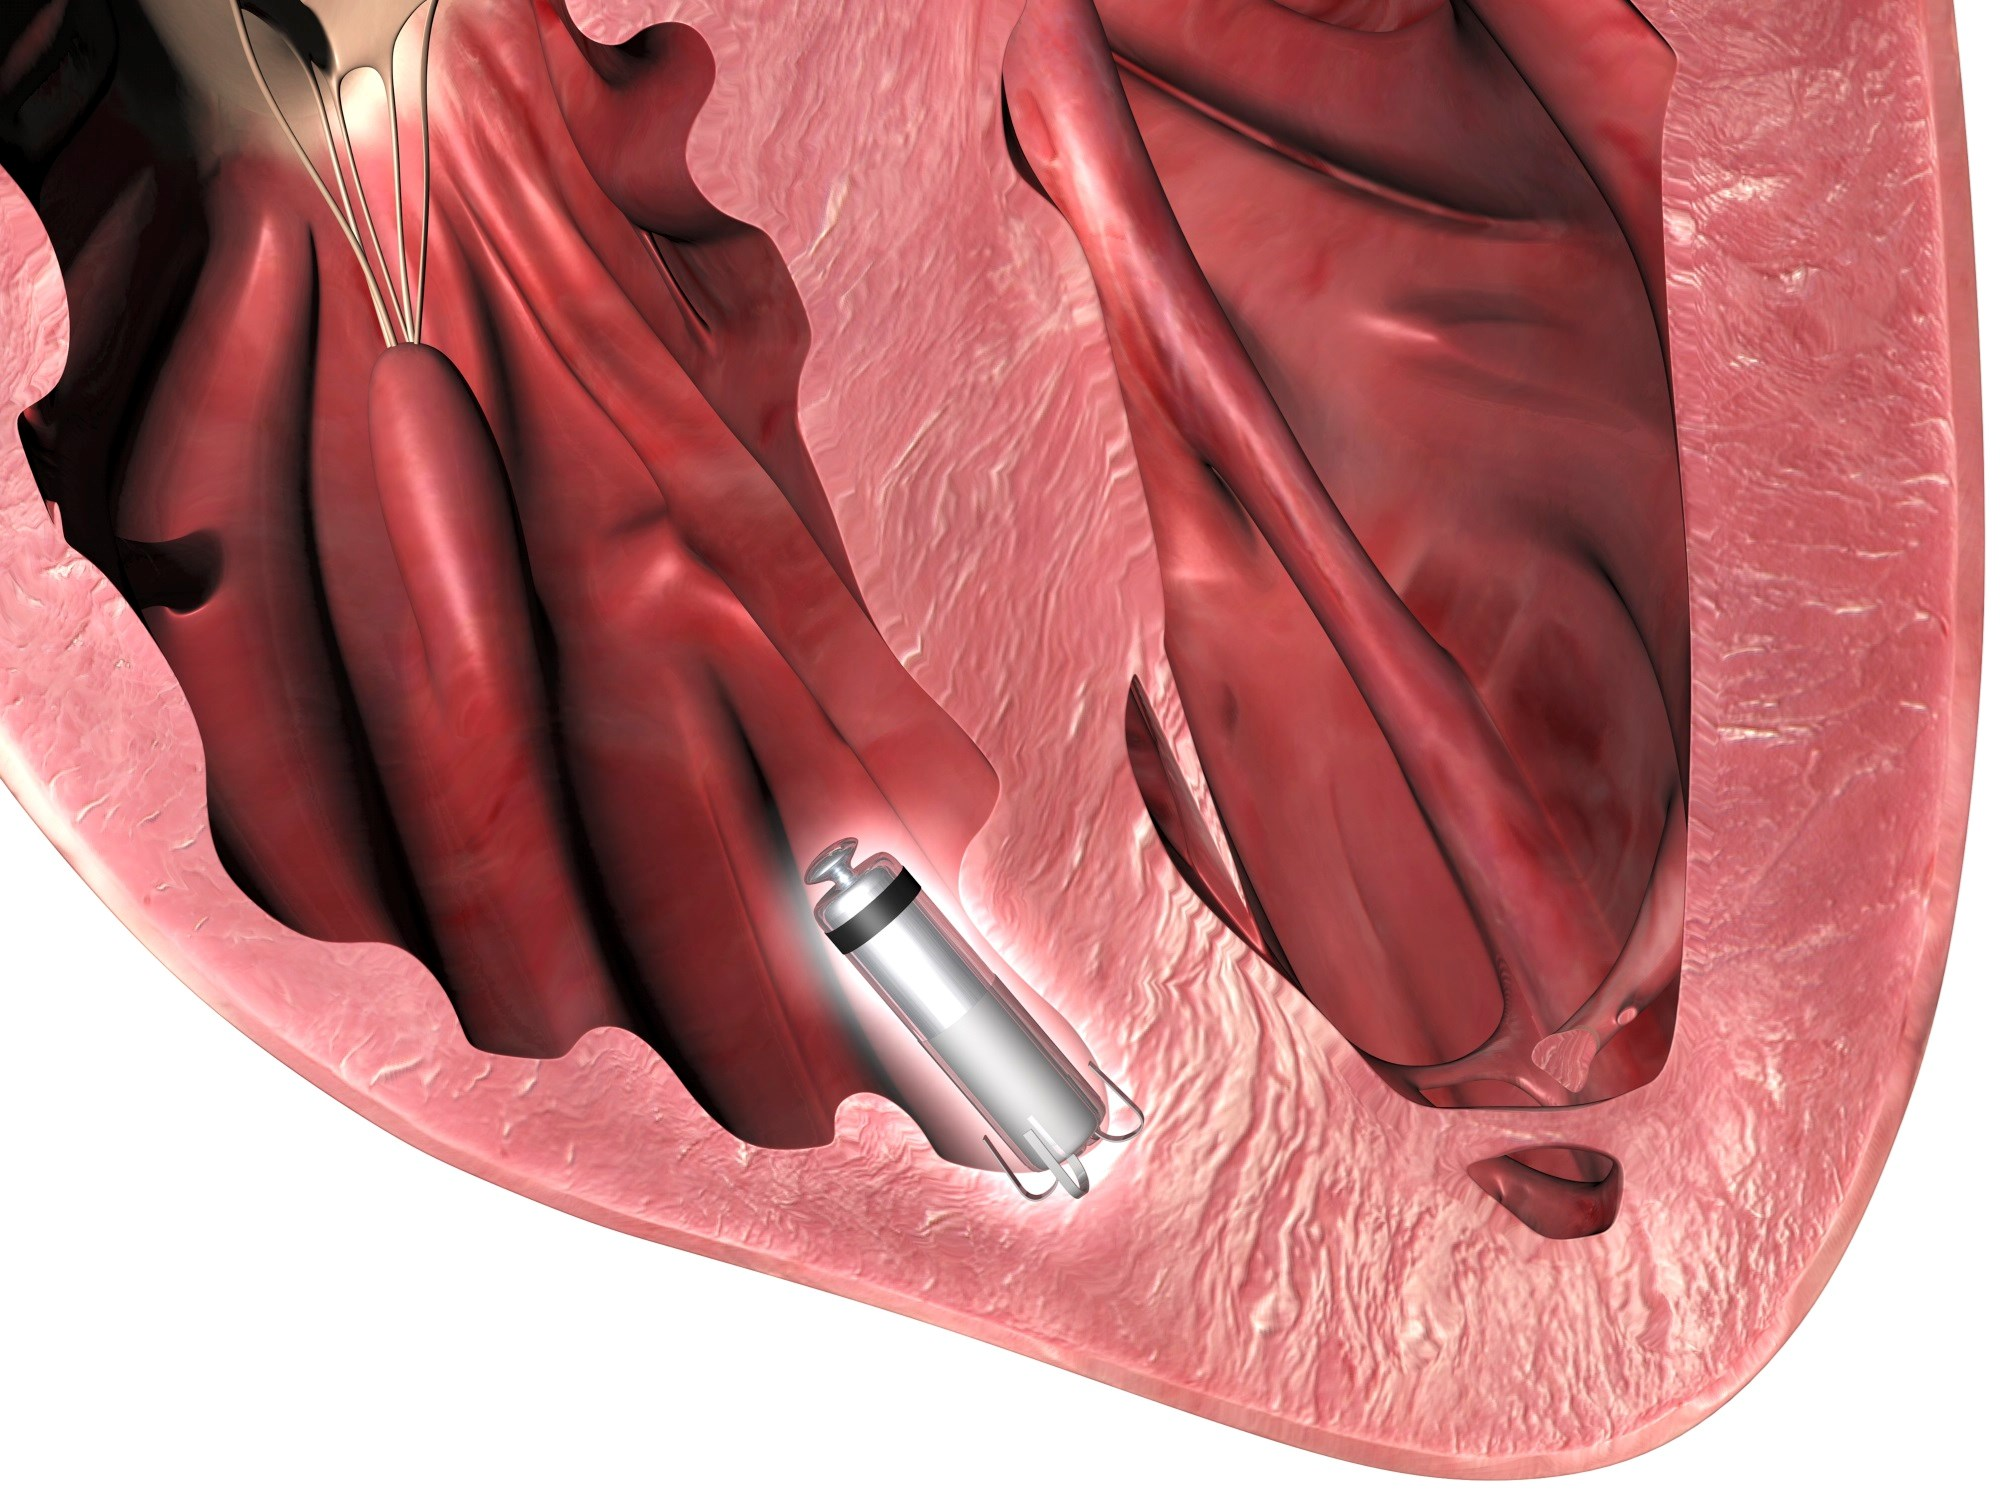 Short-term complications from a cardiac pacemaker included dislodgments, vascular-related events, and pericardial effusion both with and without tamponade.